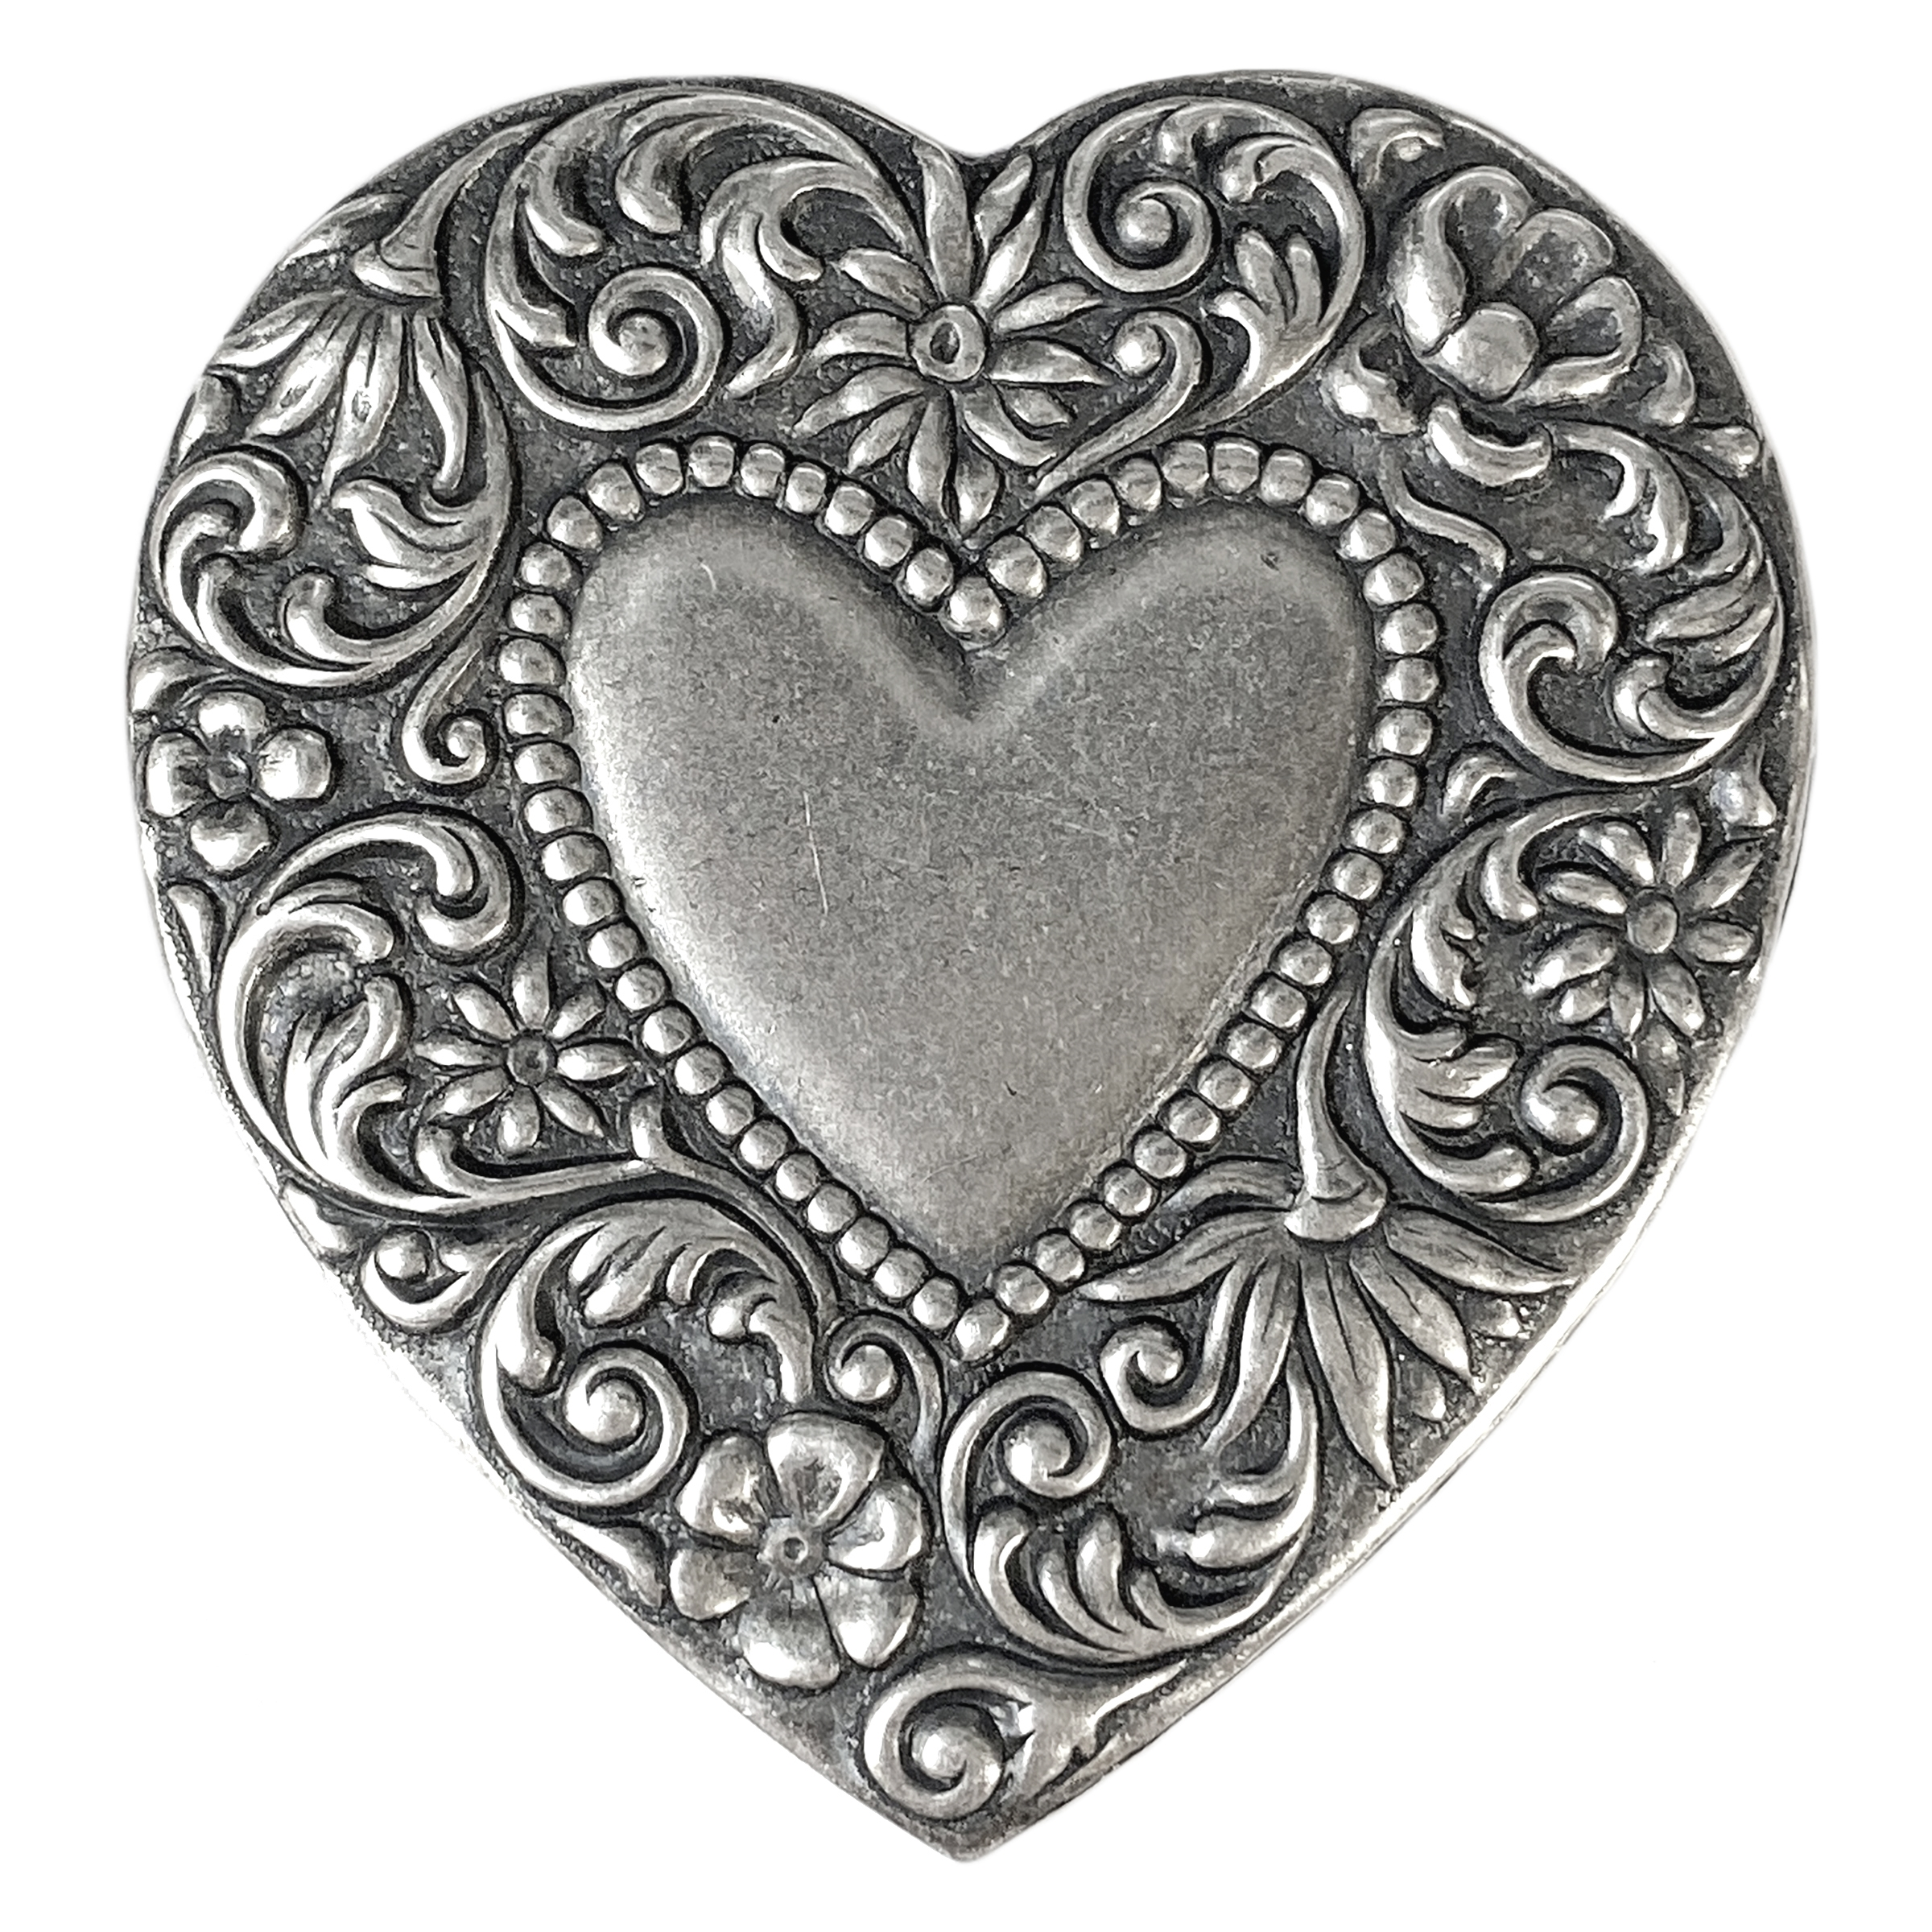 Brass Stampings, Brass Hearts, Heart Blank,Floral Heart, Silverware Silverplate, 49 x 46mm